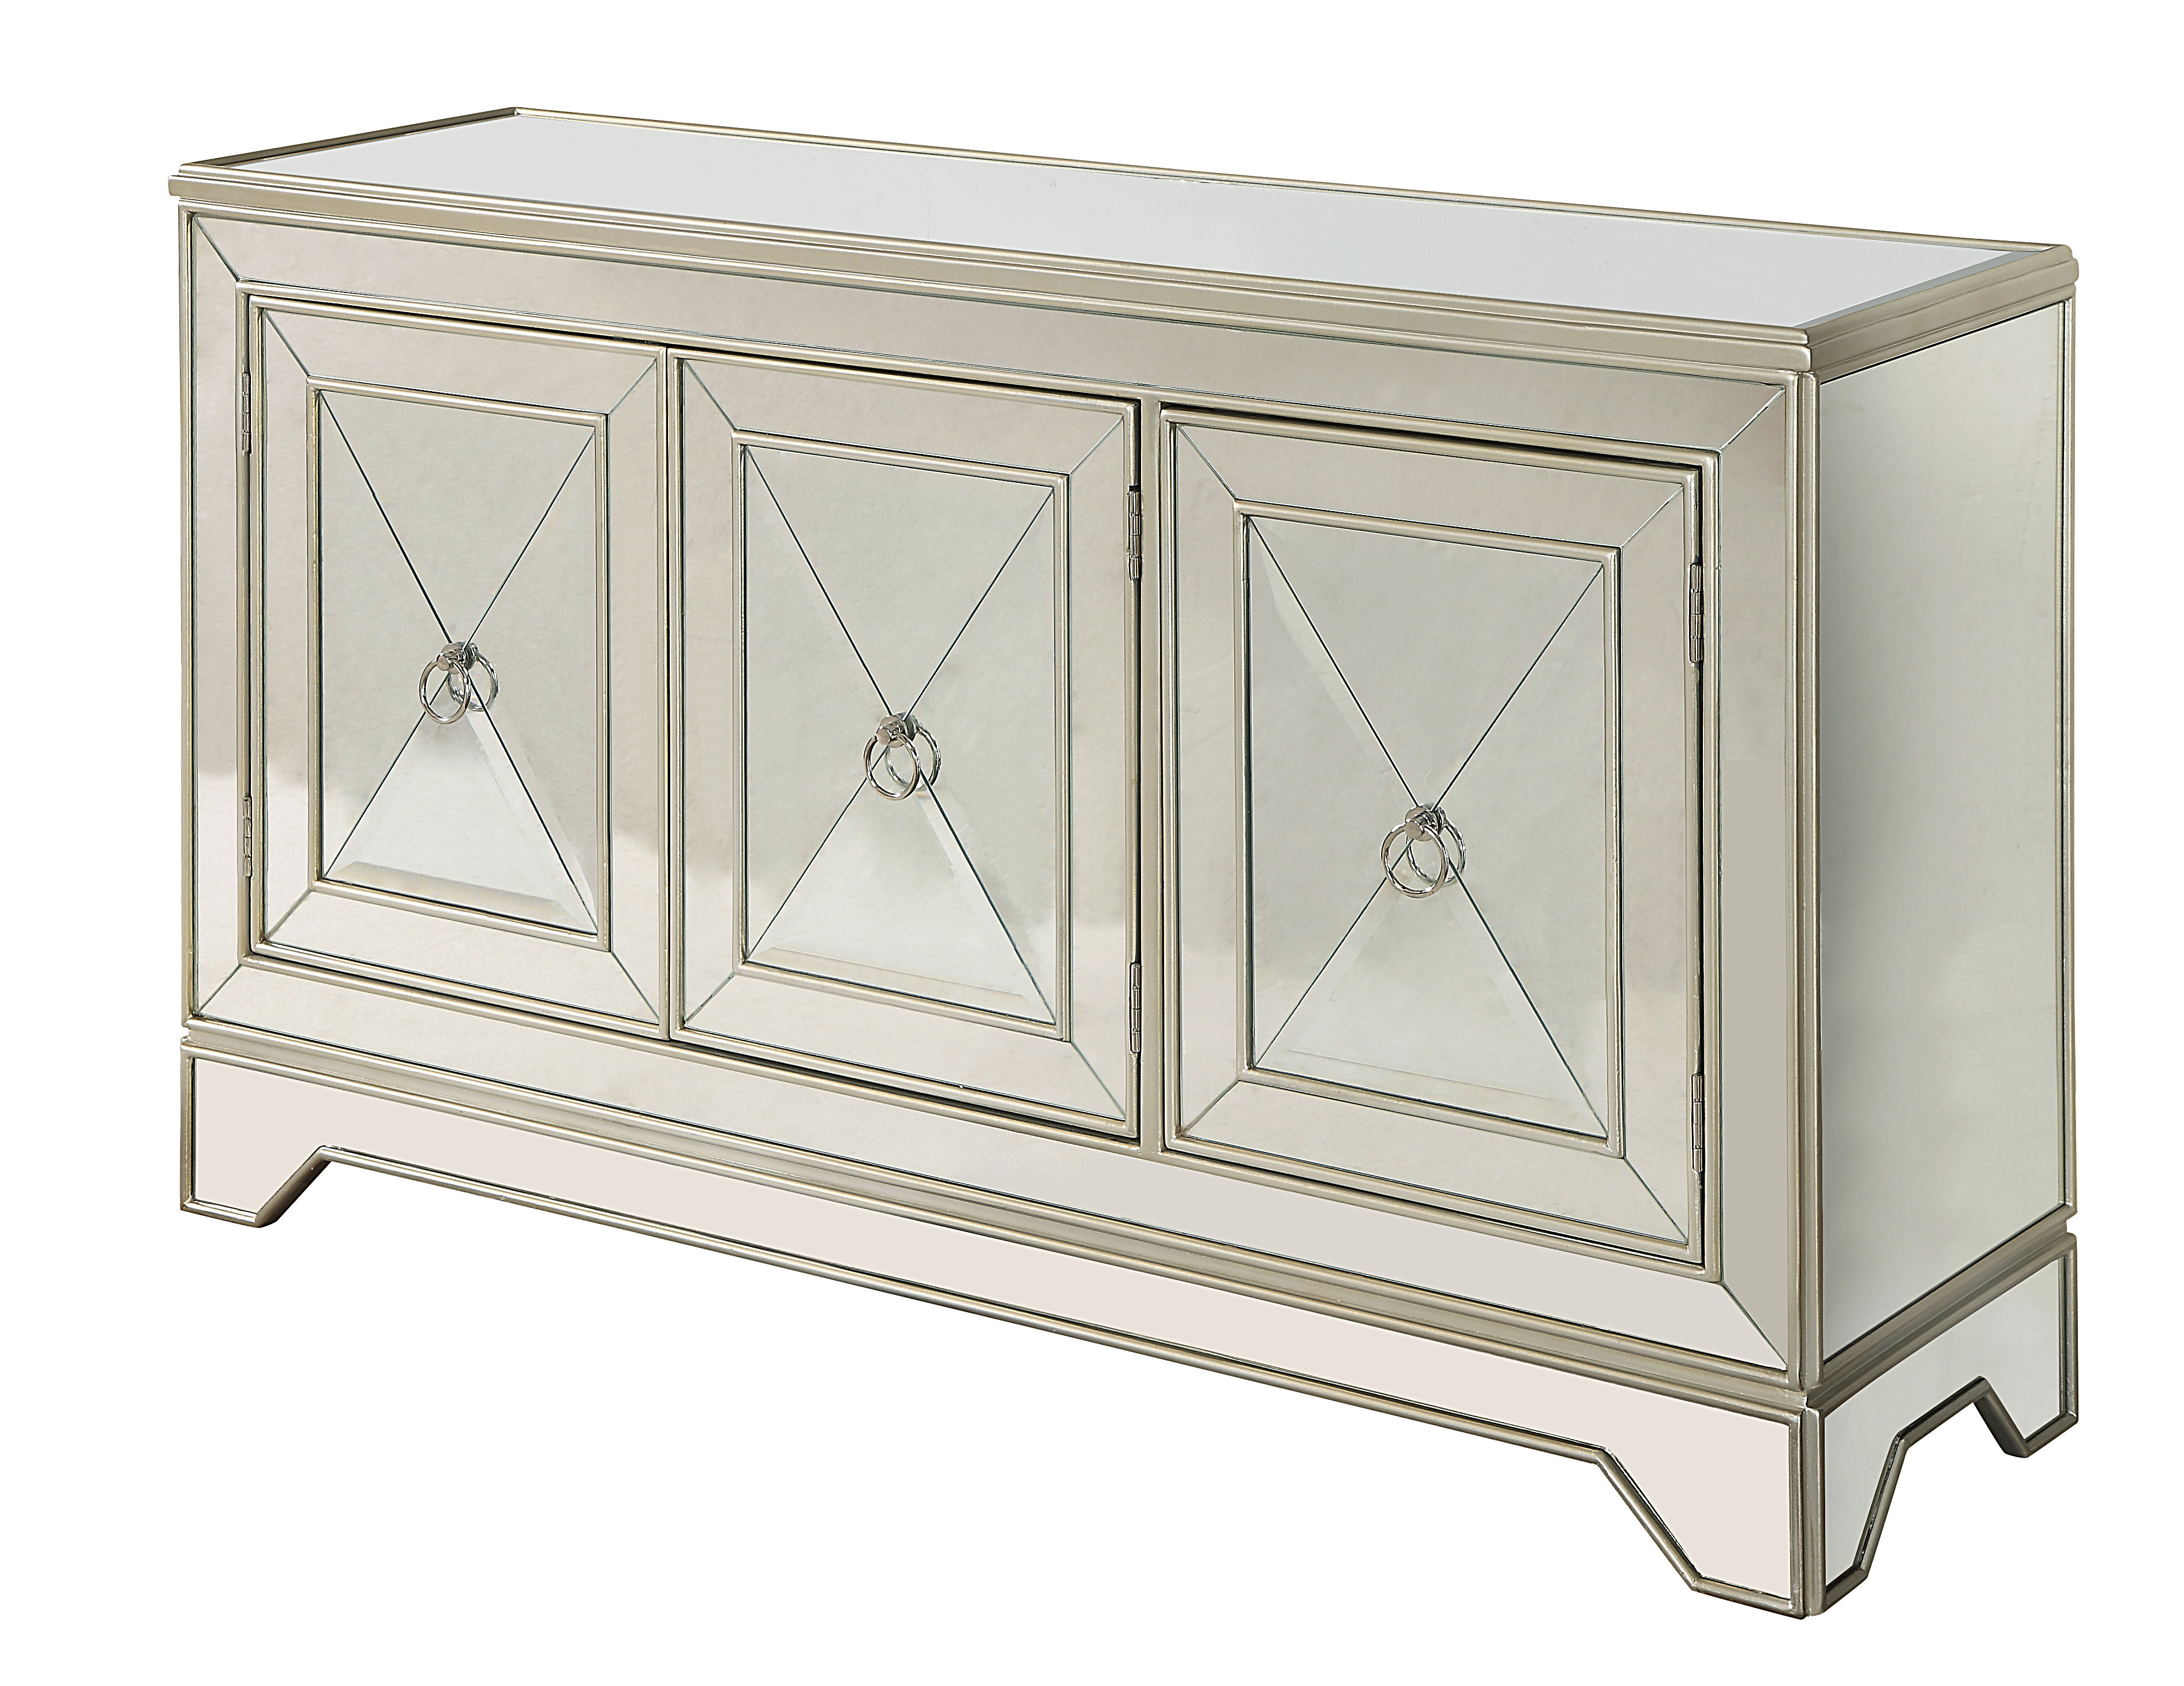 Keeney Sideboard Regarding Most Current Kendall Sideboards (View 16 of 20)